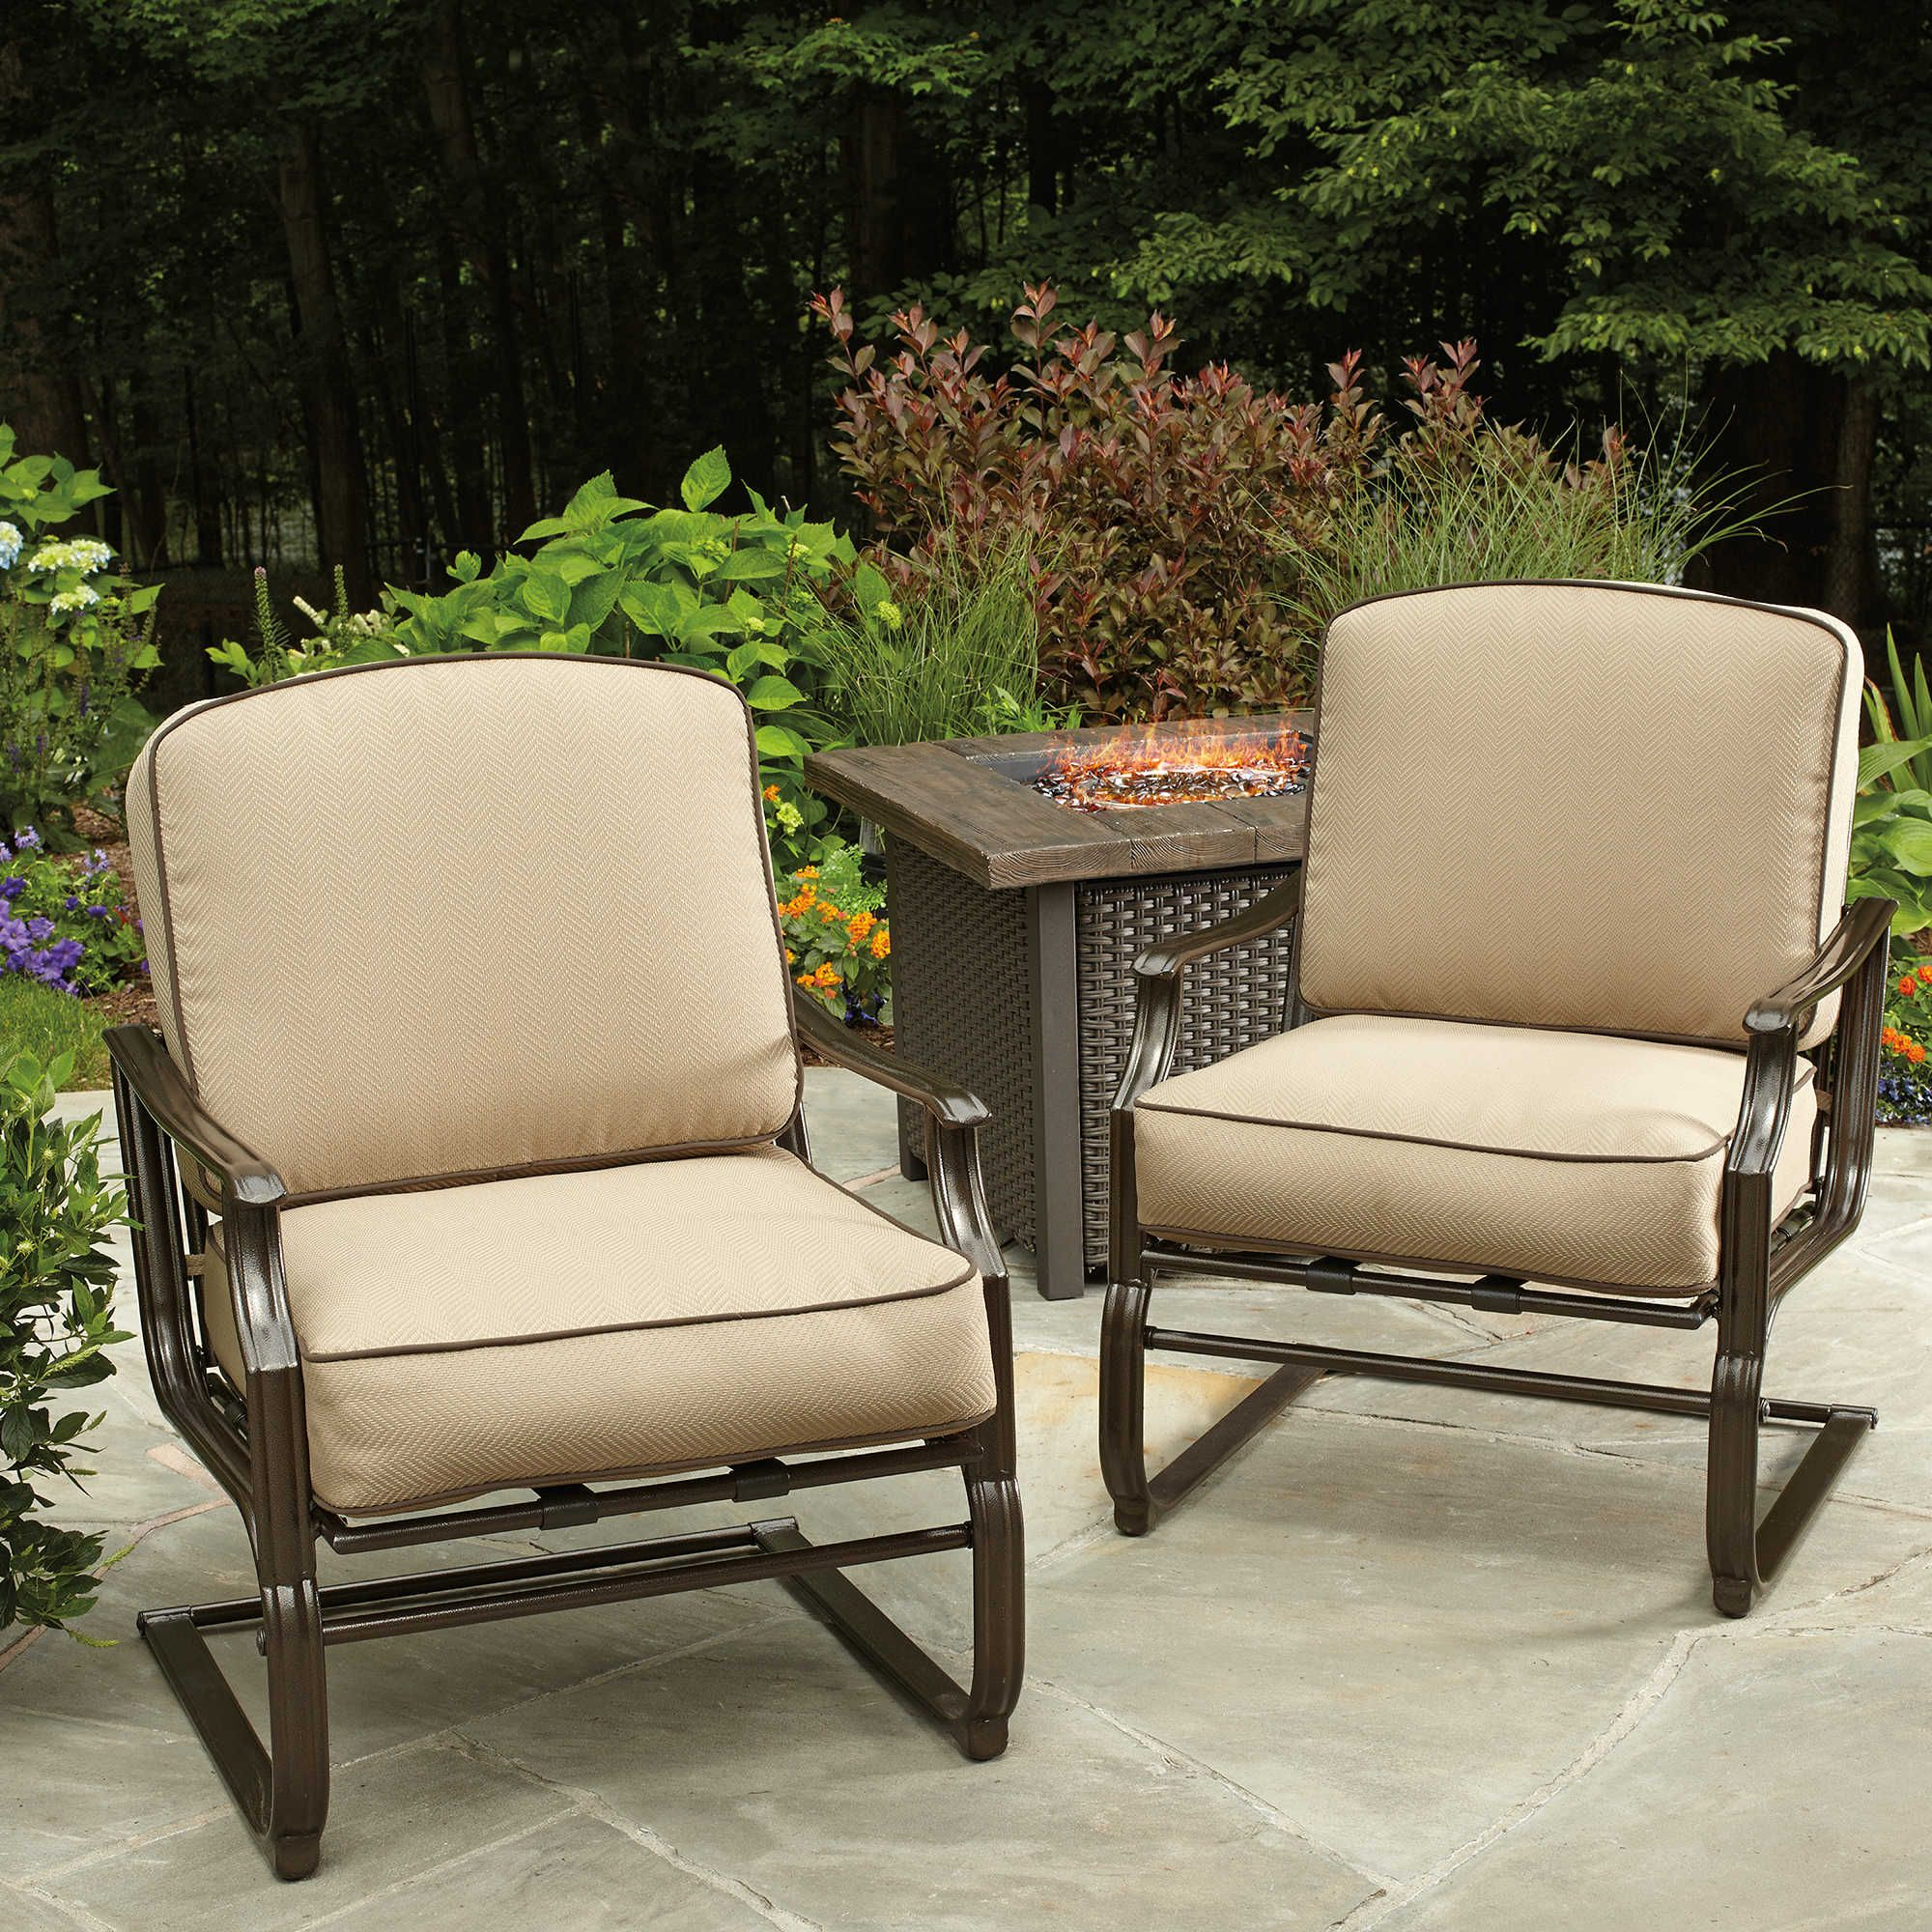 29999 motion chairs set of 2 chair outdoor